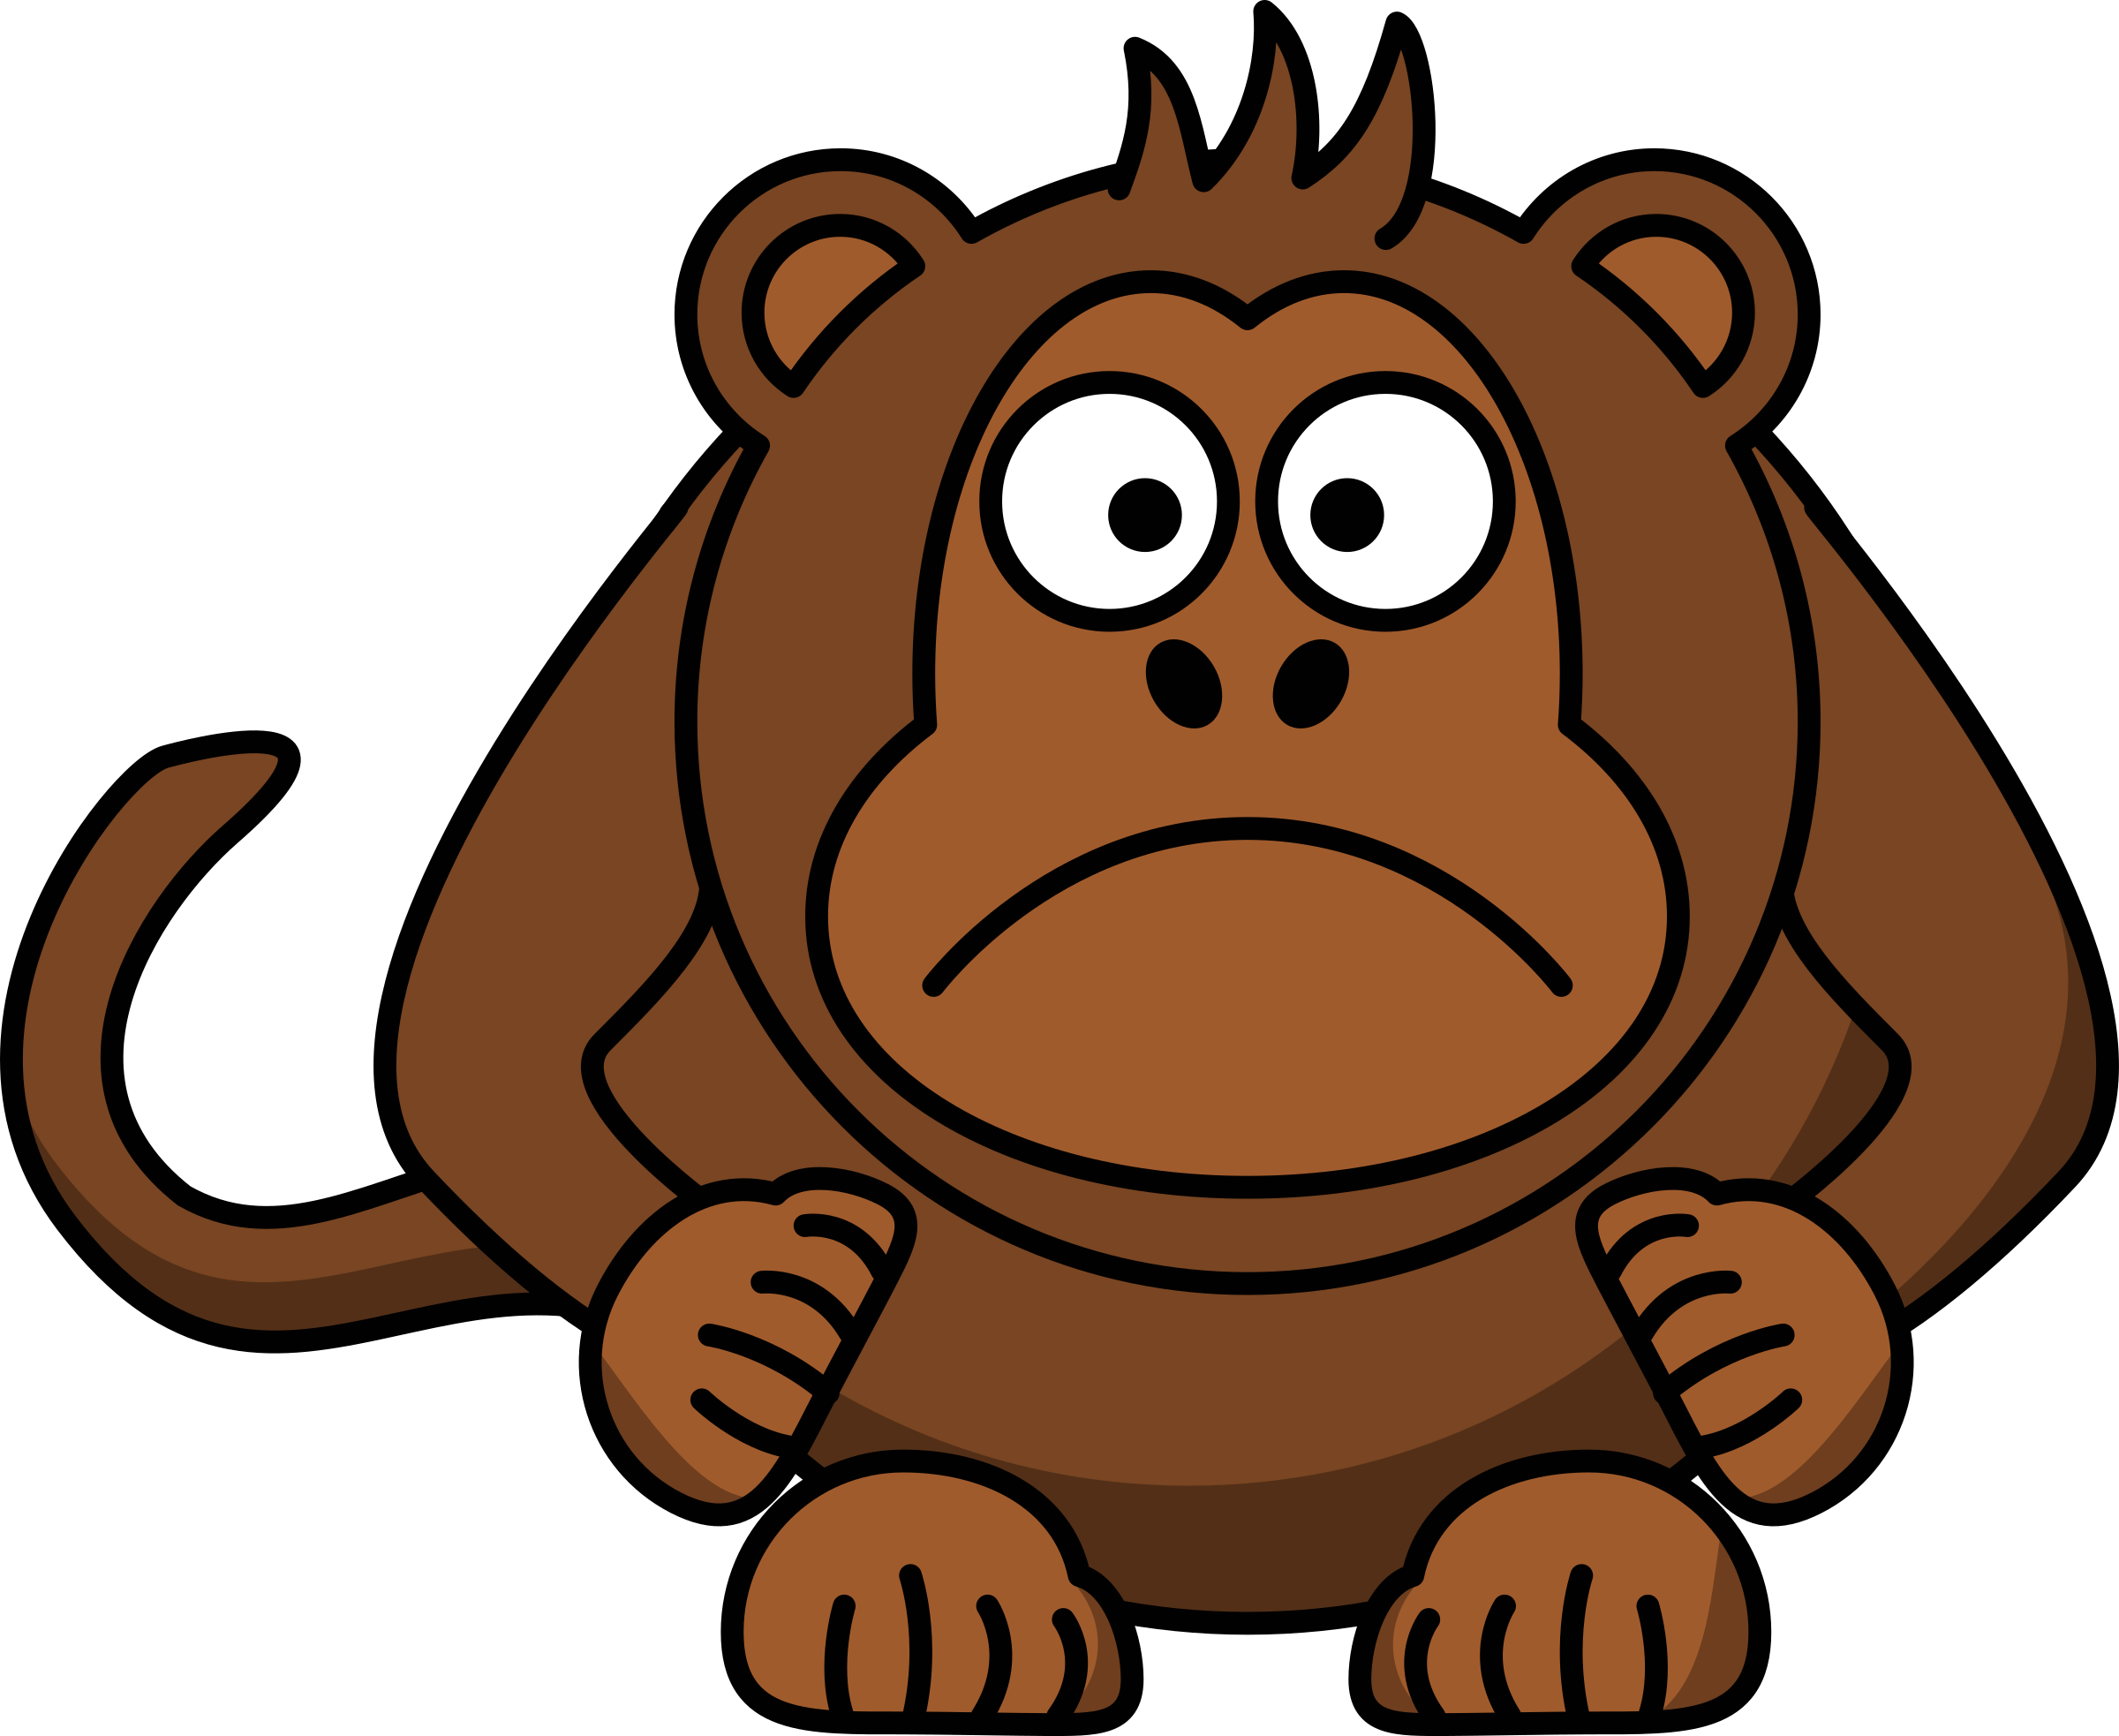 Driver clipart angry. Cartoon monkey icons png